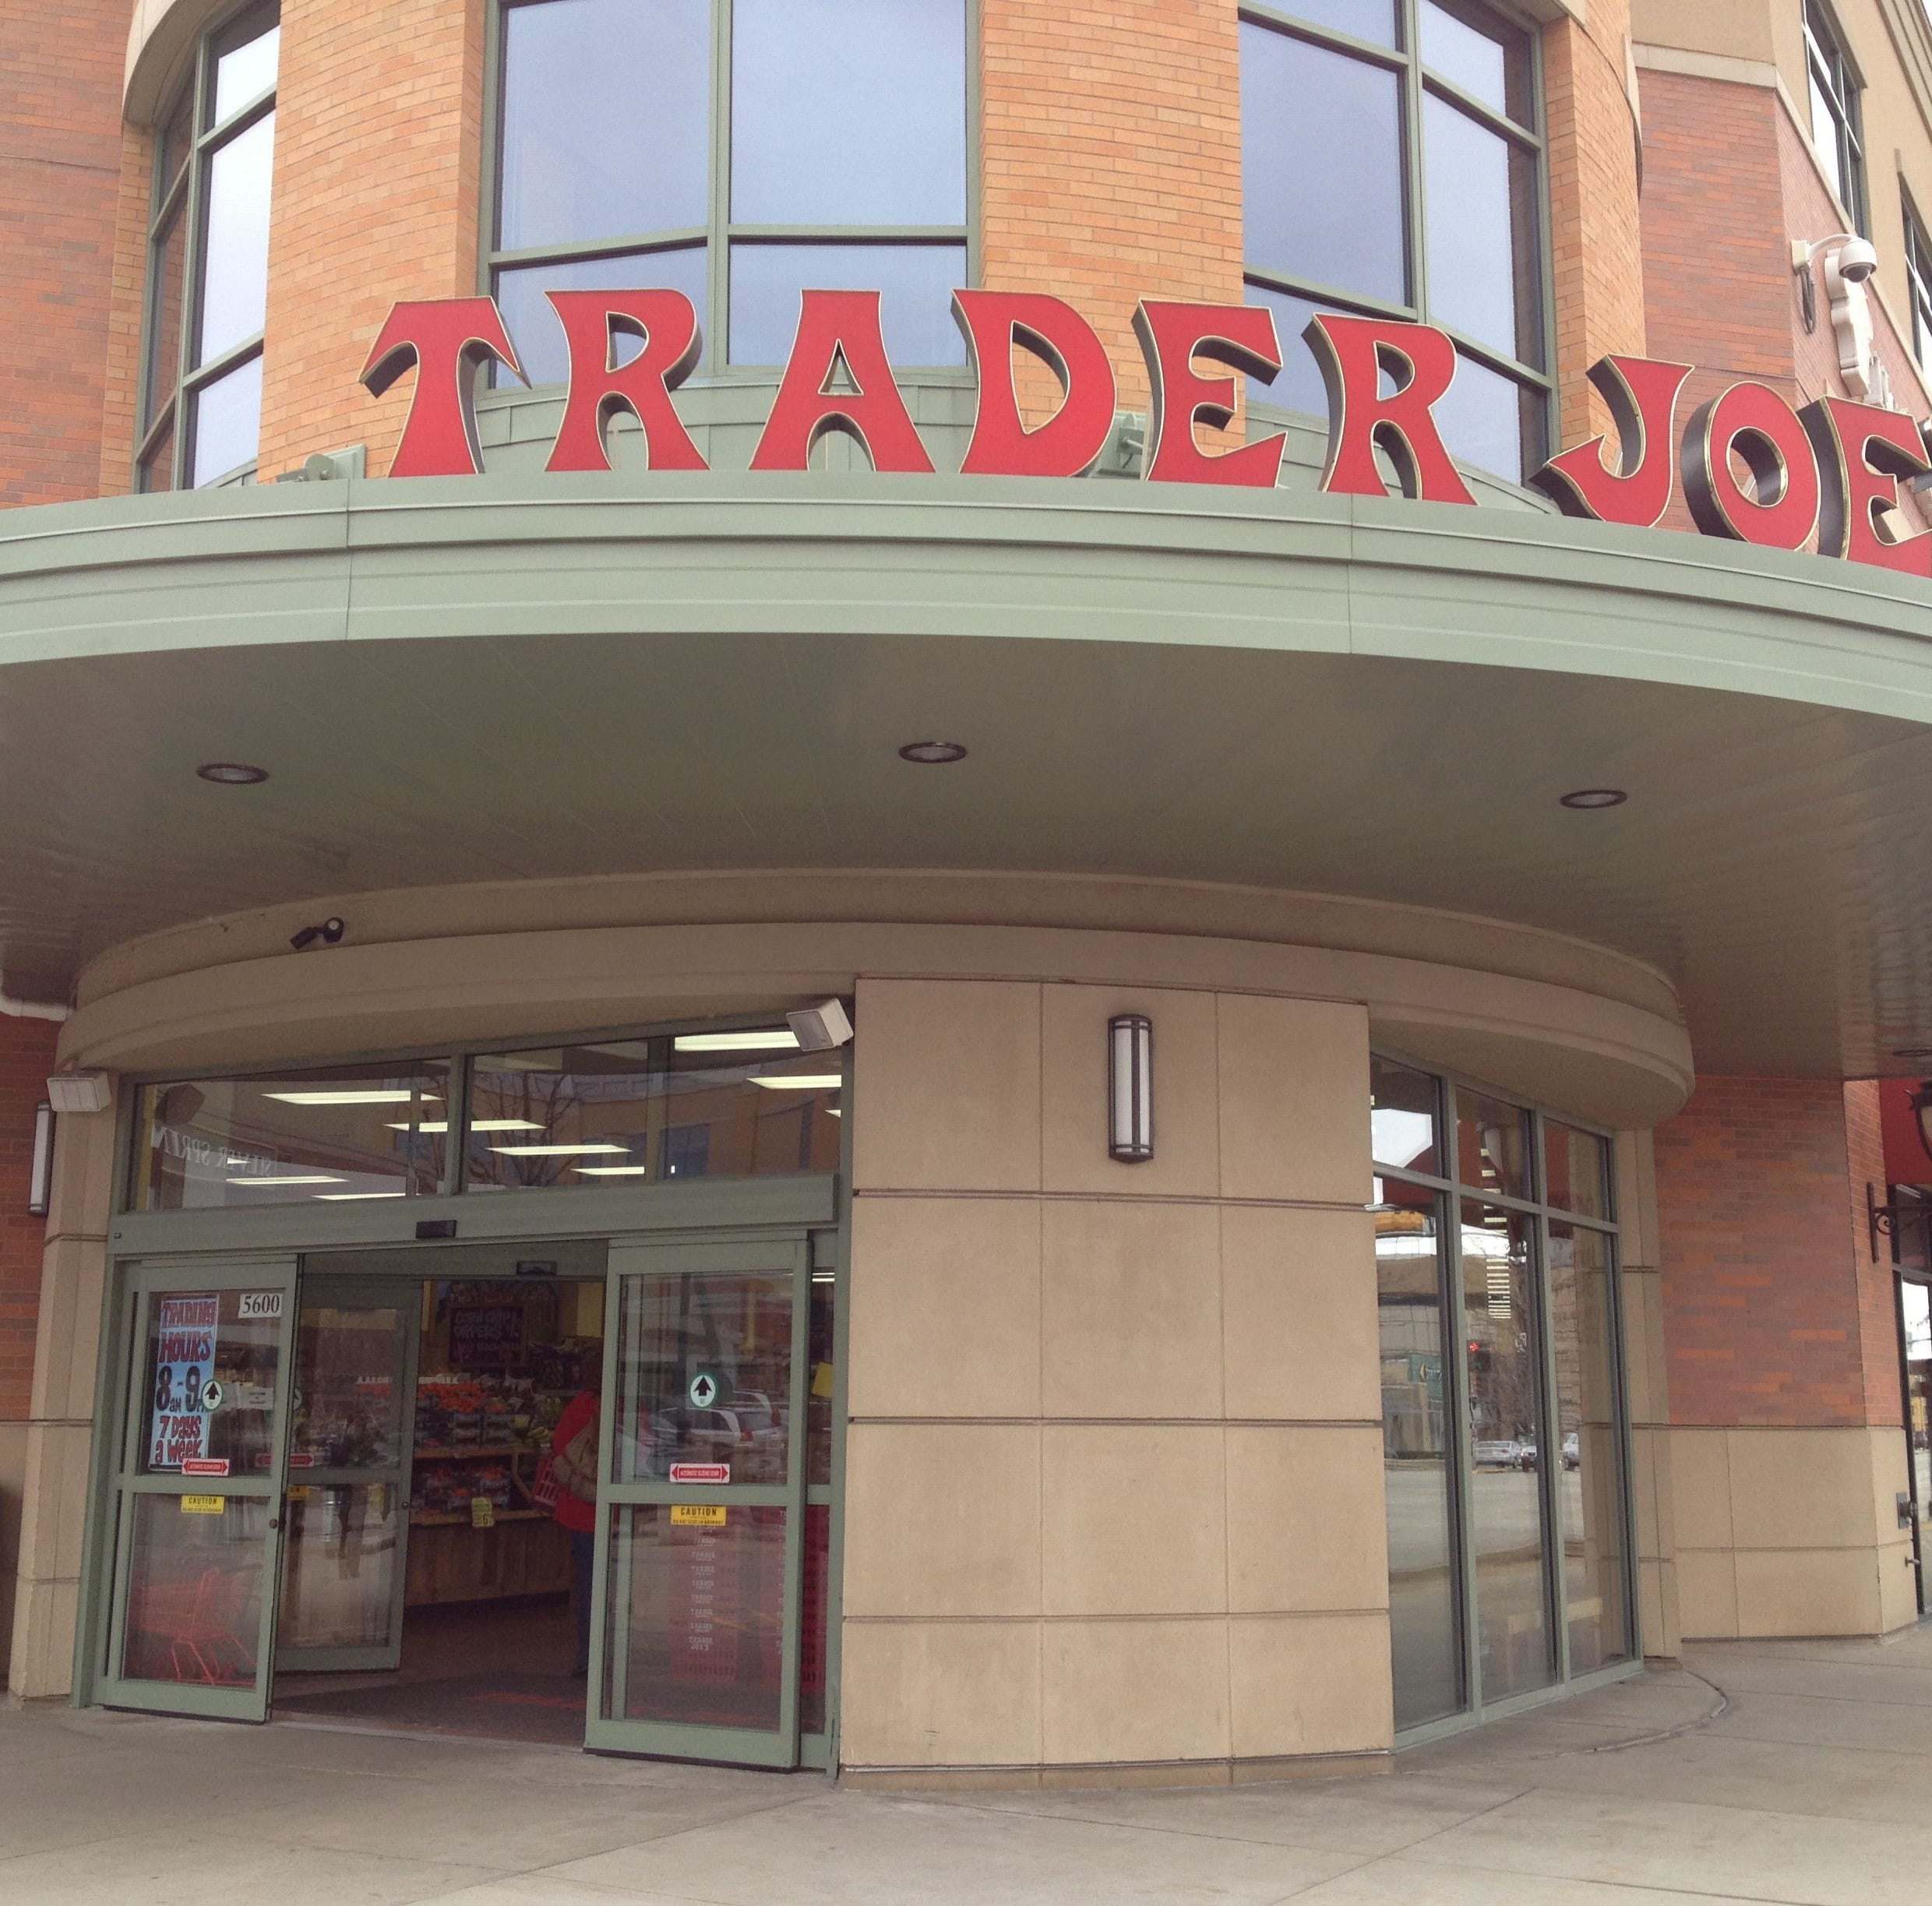 Survey: Wausau residents want Trader Joe's, Red Lobster and more retail chains